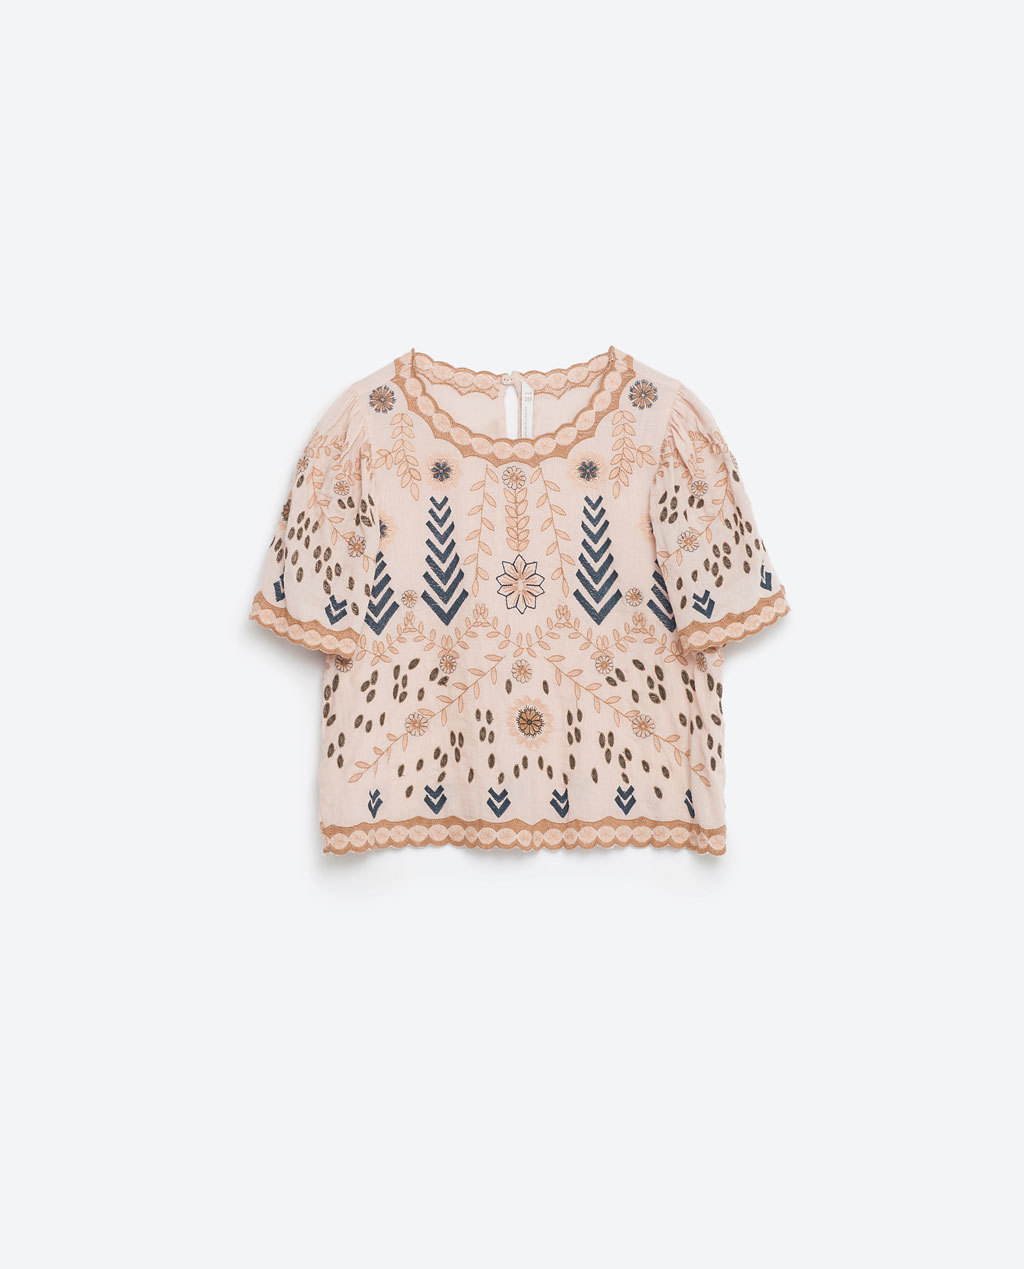 Embroidered Top - neckline: round neck; predominant colour: blush; secondary colour: navy; occasions: casual; length: standard; style: top; fibres: cotton - 100%; fit: body skimming; sleeve length: short sleeve; sleeve style: standard; texture group: cotton feel fabrics; pattern type: fabric; pattern: patterned/print; embellishment: embroidered; multicoloured: multicoloured; season: s/s 2016; wardrobe: highlight